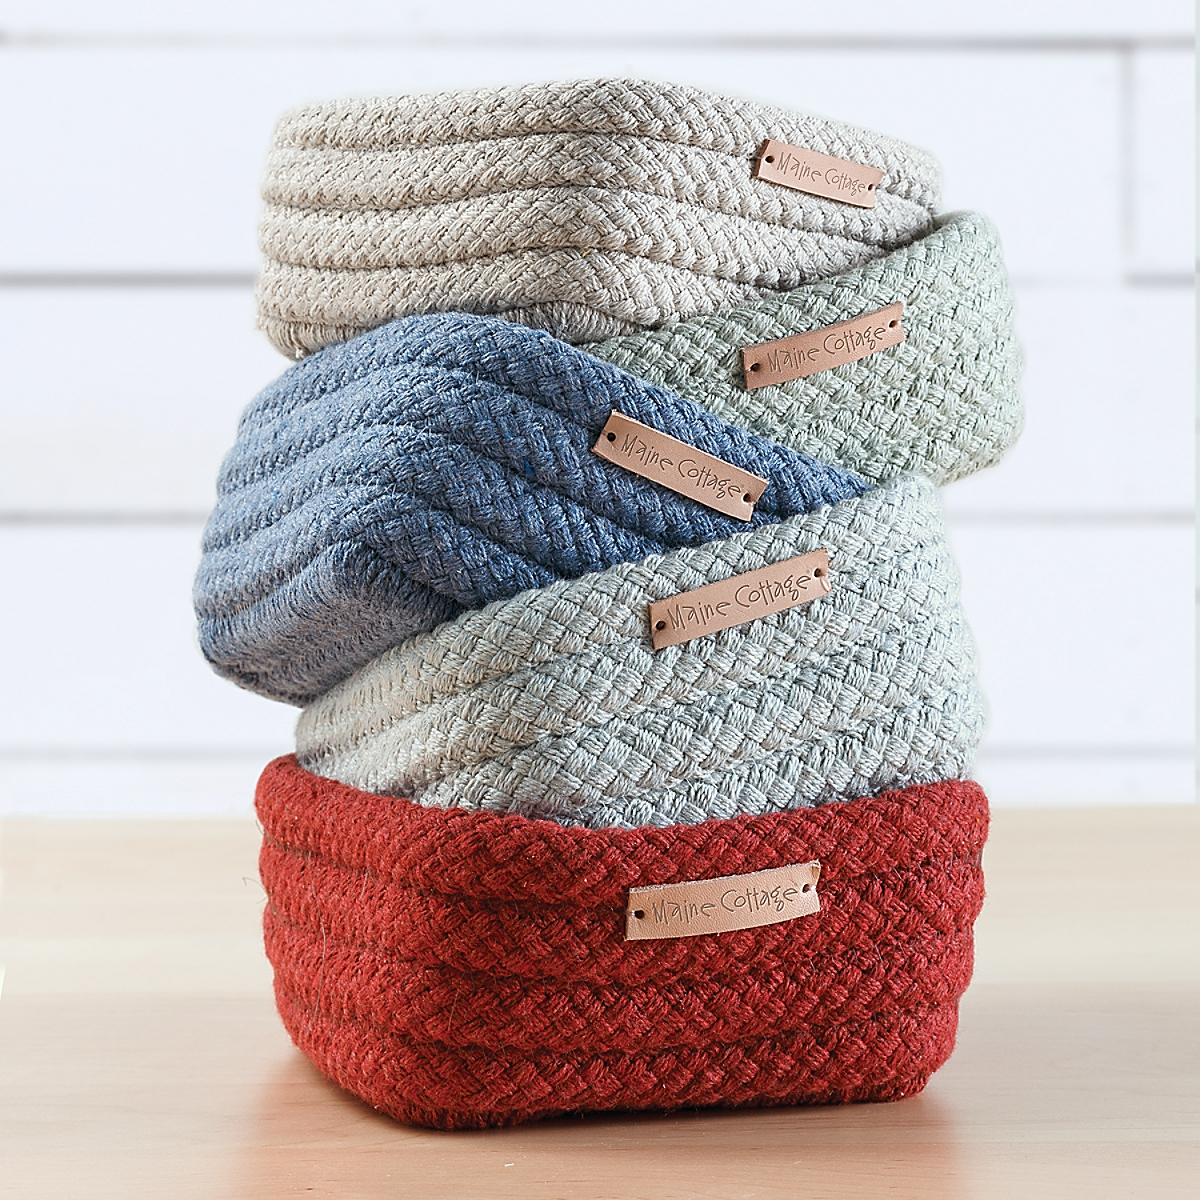 Braided Sunbrella Catchall Basket